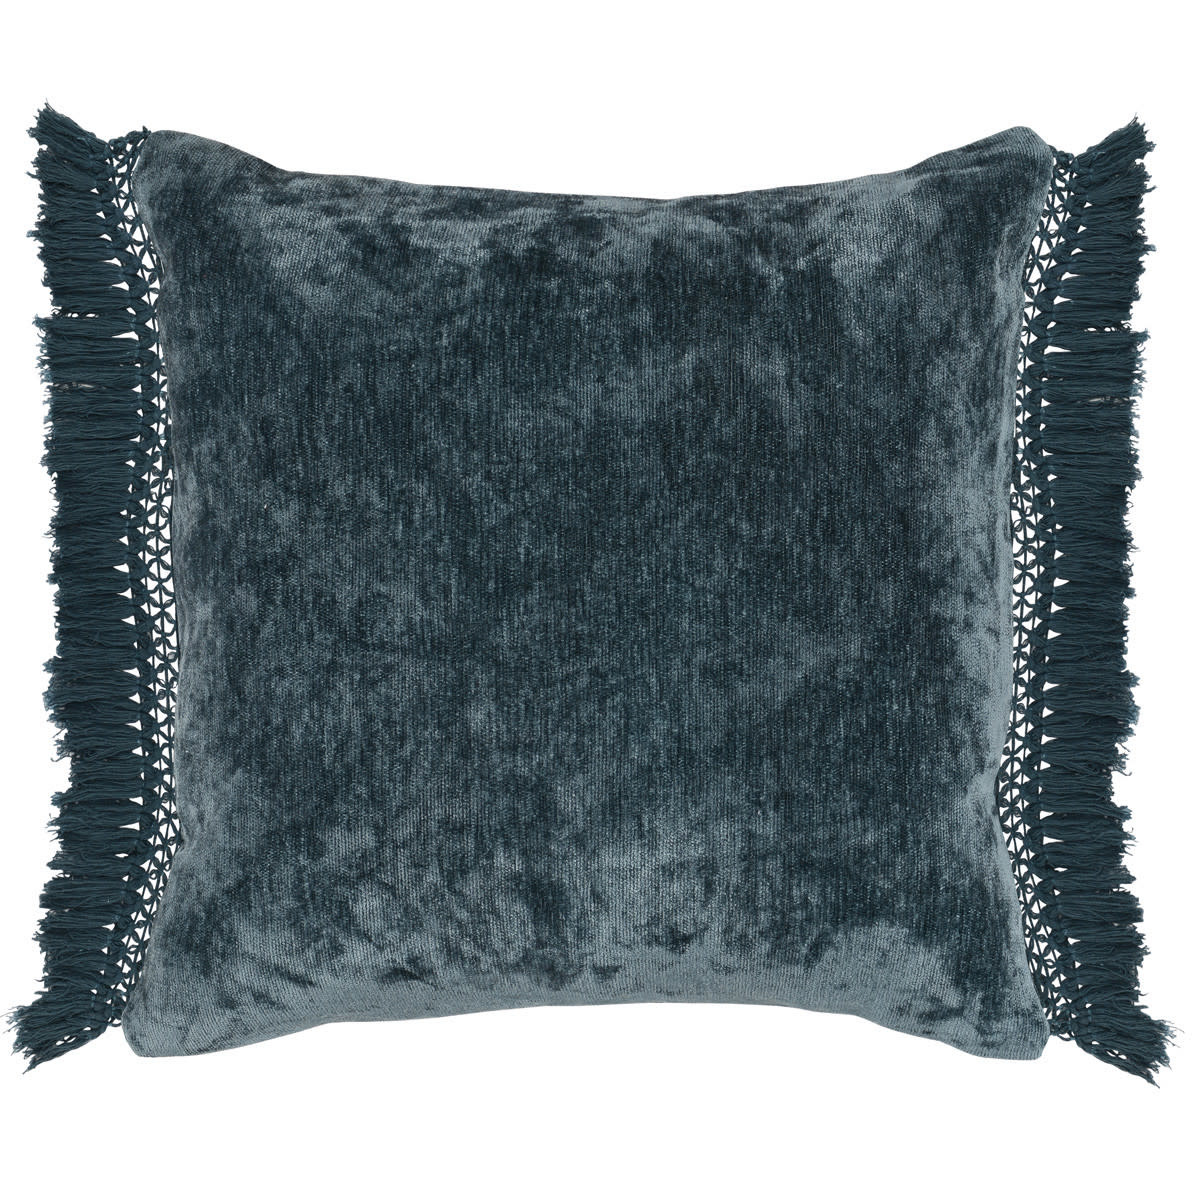 Melia Pillow Juniper - 20 x 20